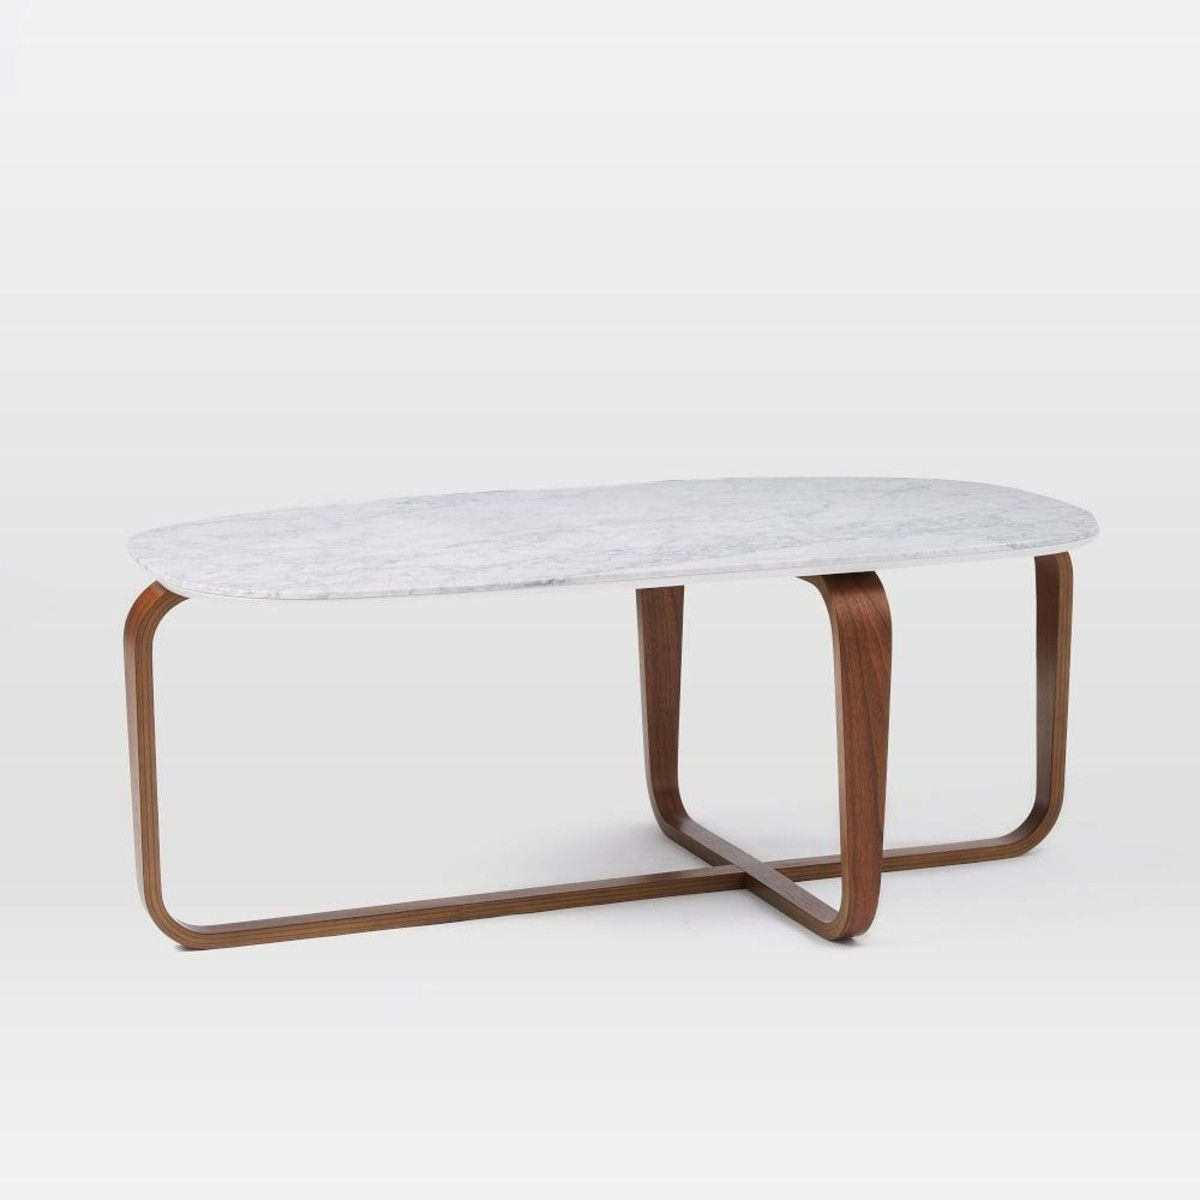 Lift Top Coffee Table West Elm: Home Style Goals & Ideas In 2019